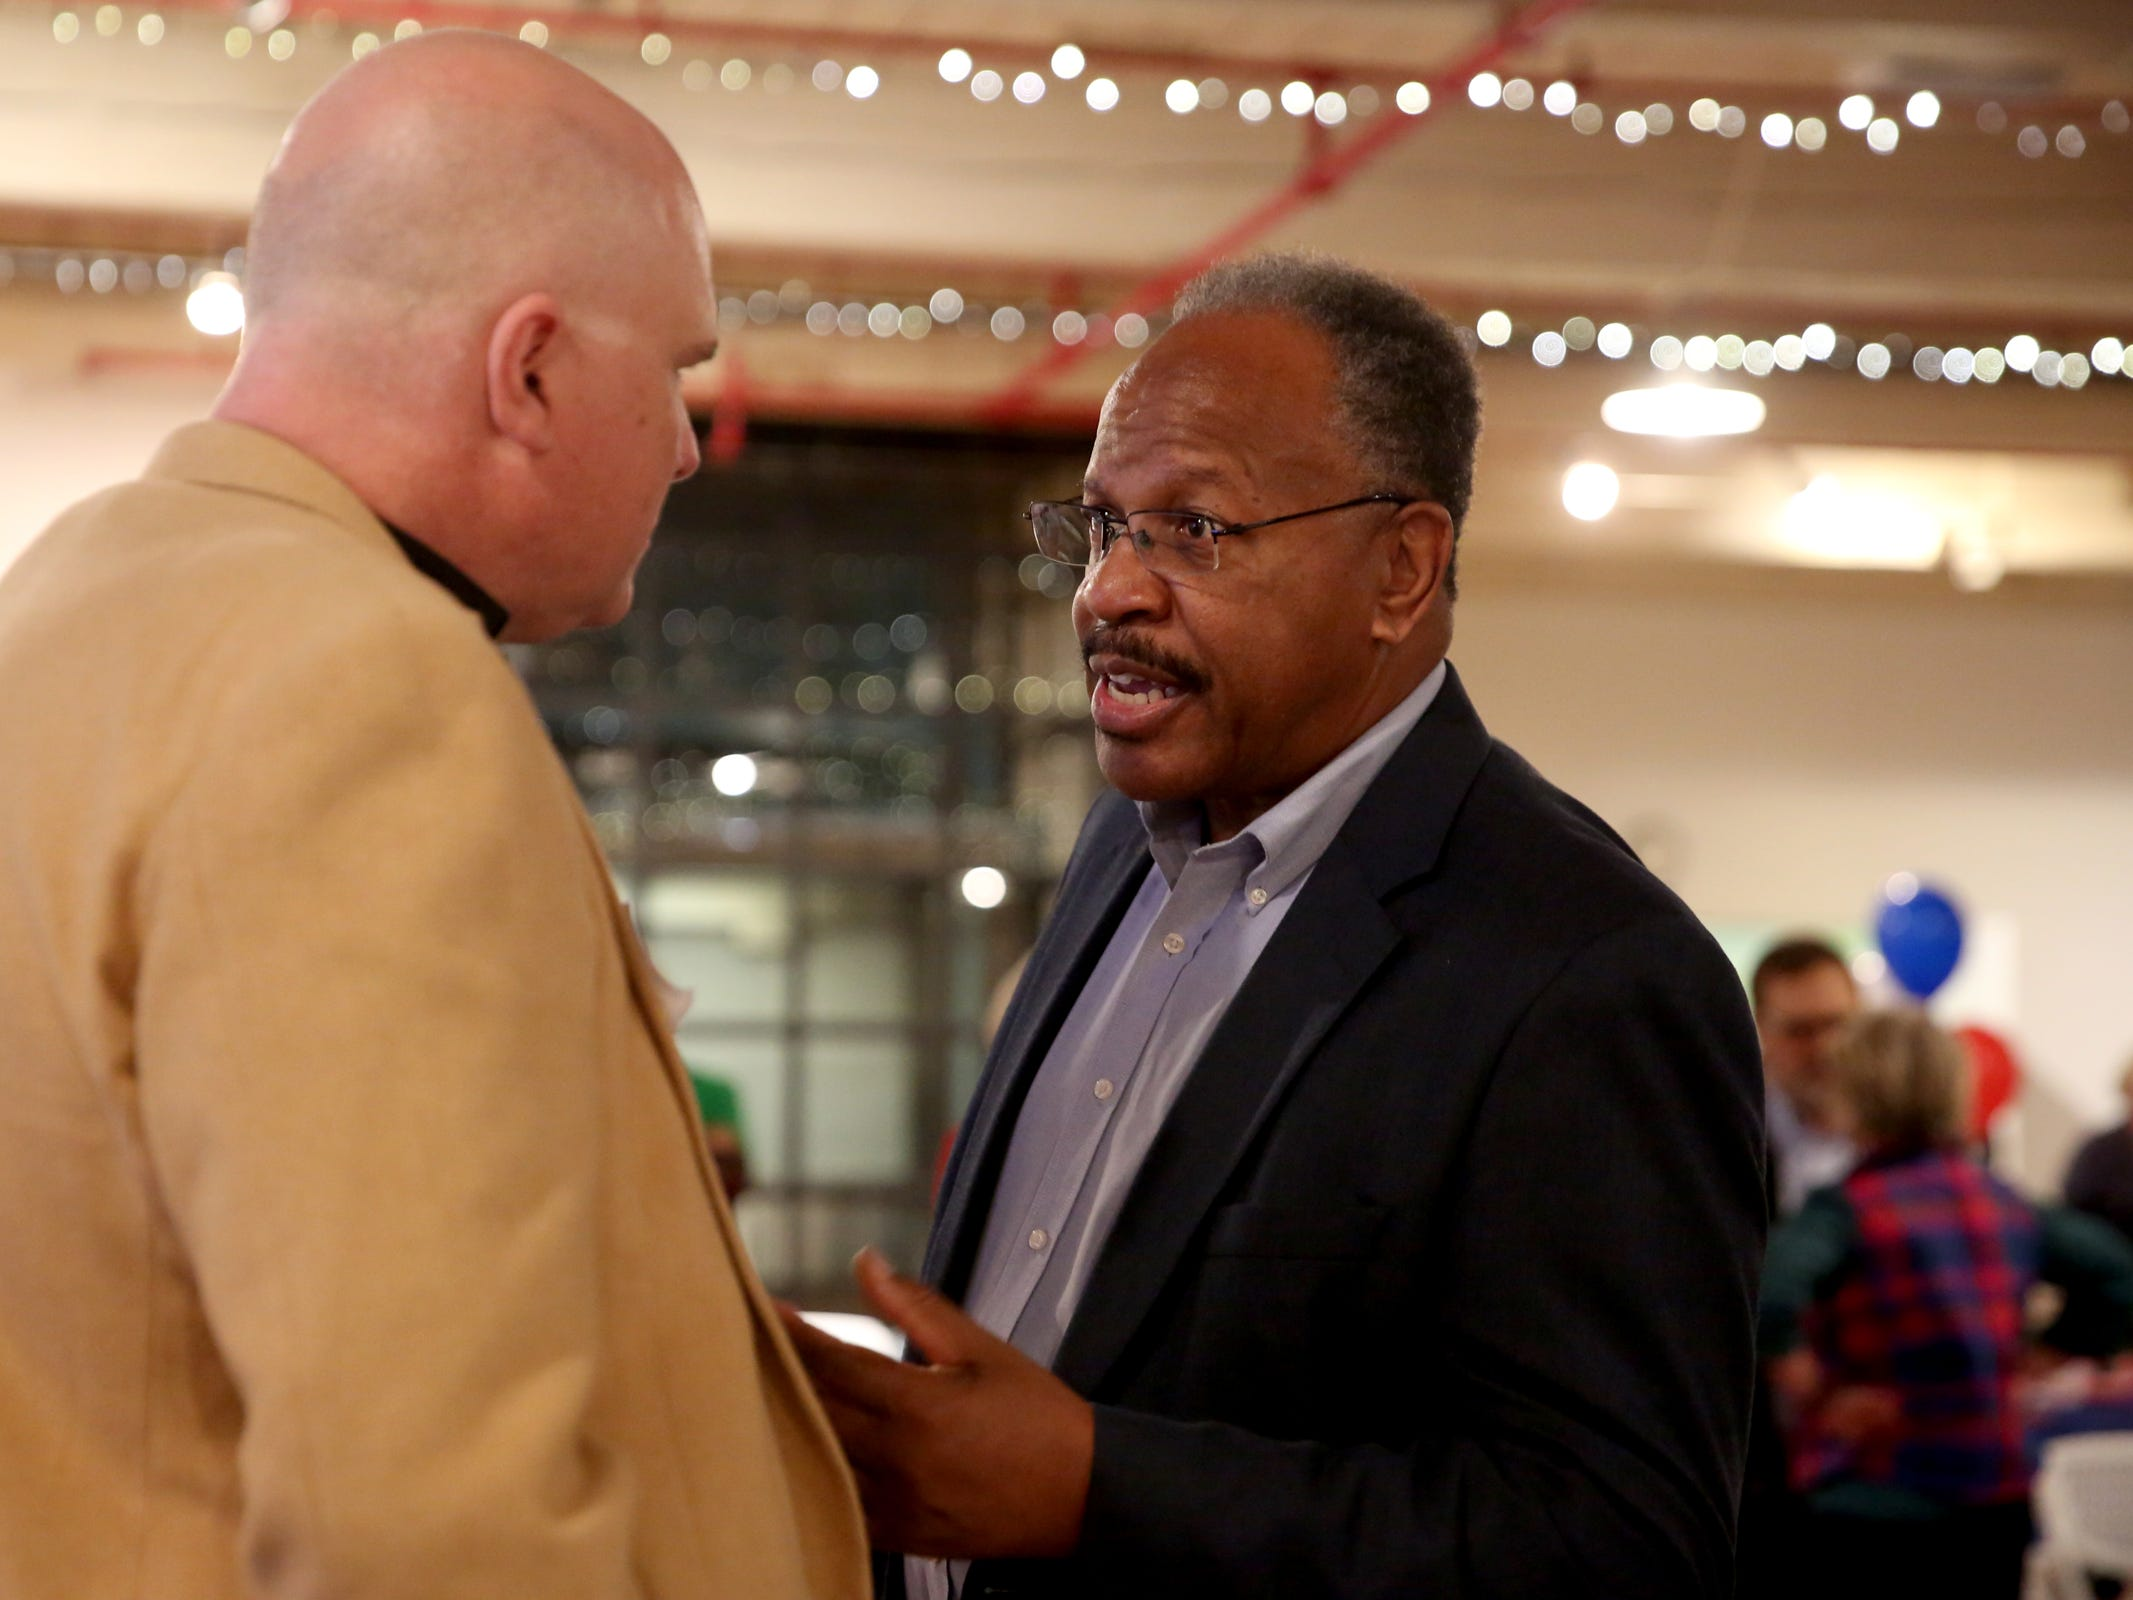 Benny Williams, right, the president of the Salem-Keizer branch of the NAACP, speaks with Sean Nikas, the small business caucus chair of the Democratic Party of Oregon, during an election night party hosted by Marion County Democrats and Polk County Democrats at the Willamette Heritage Center in Salem on Tuesday, Nov. 6, 2018.